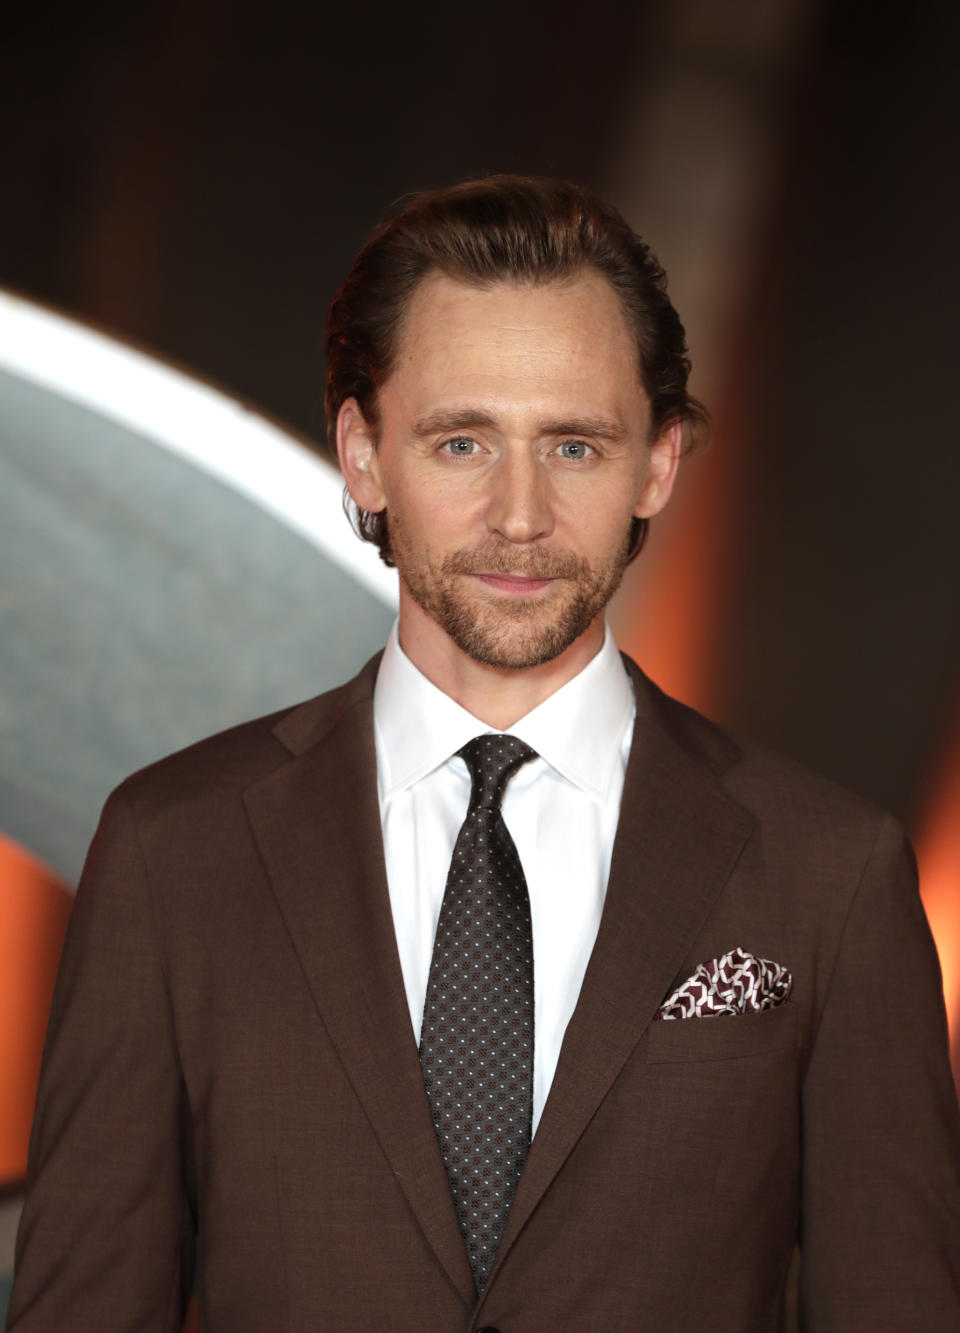 LONDON, ENGLAND - JUNE 08:   Tom Hiddleston attends the Special Screening of Marvel Studios' series LOKI on June 08, 2021 in London, England. LOKI will stream exclusively on Disney+ from Wednesday June 9, with new episodes every Wednesday. (Photo by John Phillips/Getty Images for Walt Disney Studios Motion Pictures UK)